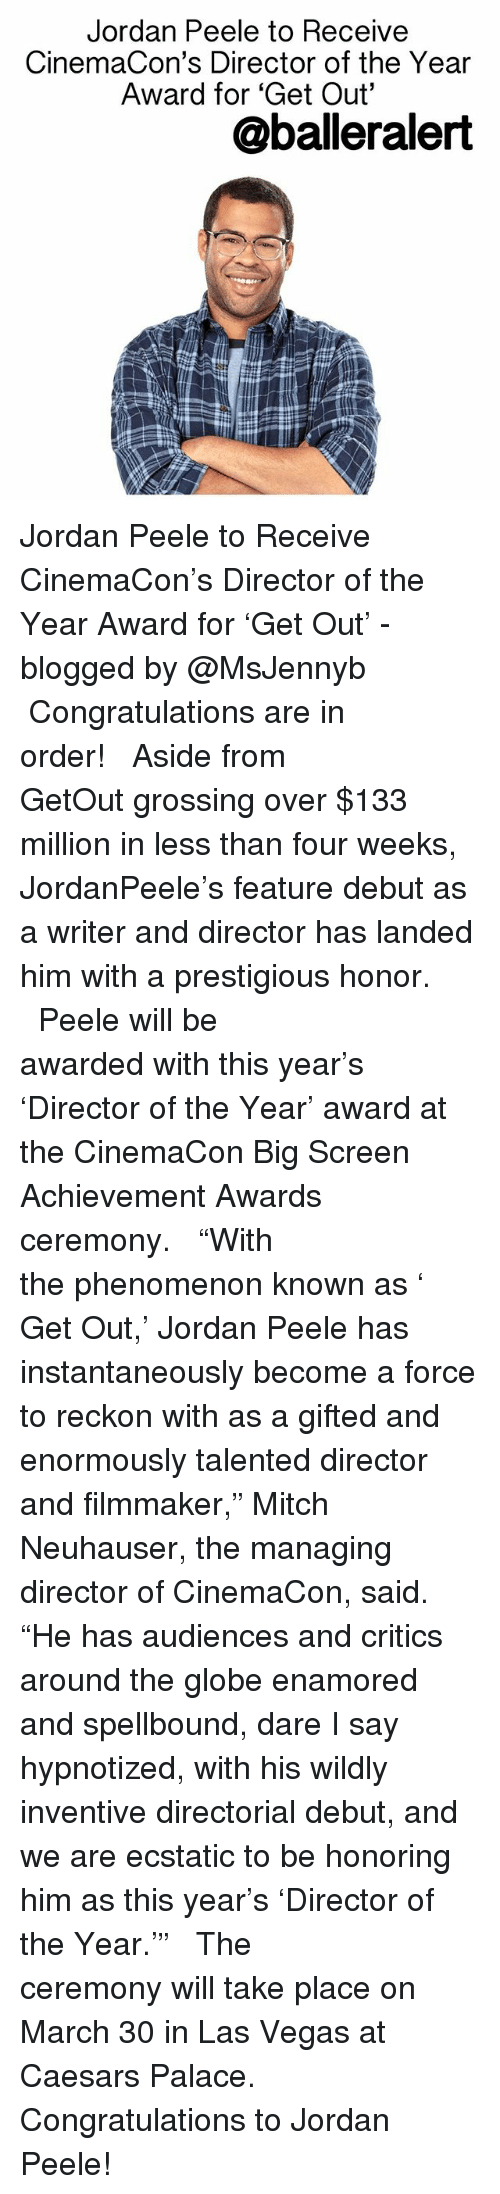 """Memes, 🤖, and Dare: Jordan Peele to Receive  CinemaCon's Director of the Year  Award for """"Get Out""""  @baller alert Jordan Peele to Receive CinemaCon's Director of the Year Award for 'Get Out' - blogged by @MsJennyb ⠀⠀⠀⠀⠀⠀⠀⠀⠀ ⠀⠀⠀⠀⠀⠀⠀⠀⠀ Congratulations are in order! ⠀⠀⠀⠀⠀⠀⠀⠀⠀ ⠀⠀⠀⠀⠀⠀⠀⠀⠀ Aside from GetOut grossing over $133 million in less than four weeks, JordanPeele's feature debut as a writer and director has landed him with a prestigious honor. ⠀⠀⠀⠀⠀⠀⠀⠀⠀ ⠀⠀⠀⠀⠀⠀⠀⠀⠀ Peele will be awarded with this year's 'Director of the Year' award at the CinemaCon Big Screen Achievement Awards ceremony. ⠀⠀⠀⠀⠀⠀⠀⠀⠀ ⠀⠀⠀⠀⠀⠀⠀⠀⠀ """"With the phenomenon known as ' Get Out,' Jordan Peele has instantaneously become a force to reckon with as a gifted and enormously talented director and filmmaker,"""" Mitch Neuhauser, the managing director of CinemaCon, said. """"He has audiences and critics around the globe enamored and spellbound, dare I say hypnotized, with his wildly inventive directorial debut, and we are ecstatic to be honoring him as this year's 'Director of the Year.'"""" ⠀⠀⠀⠀⠀⠀⠀⠀⠀ ⠀⠀⠀⠀⠀⠀⠀⠀⠀ The ceremony will take place on March 30 in Las Vegas at Caesars Palace. ⠀⠀⠀⠀⠀⠀⠀⠀⠀ ⠀⠀⠀⠀⠀⠀⠀⠀⠀ Congratulations to Jordan Peele!"""